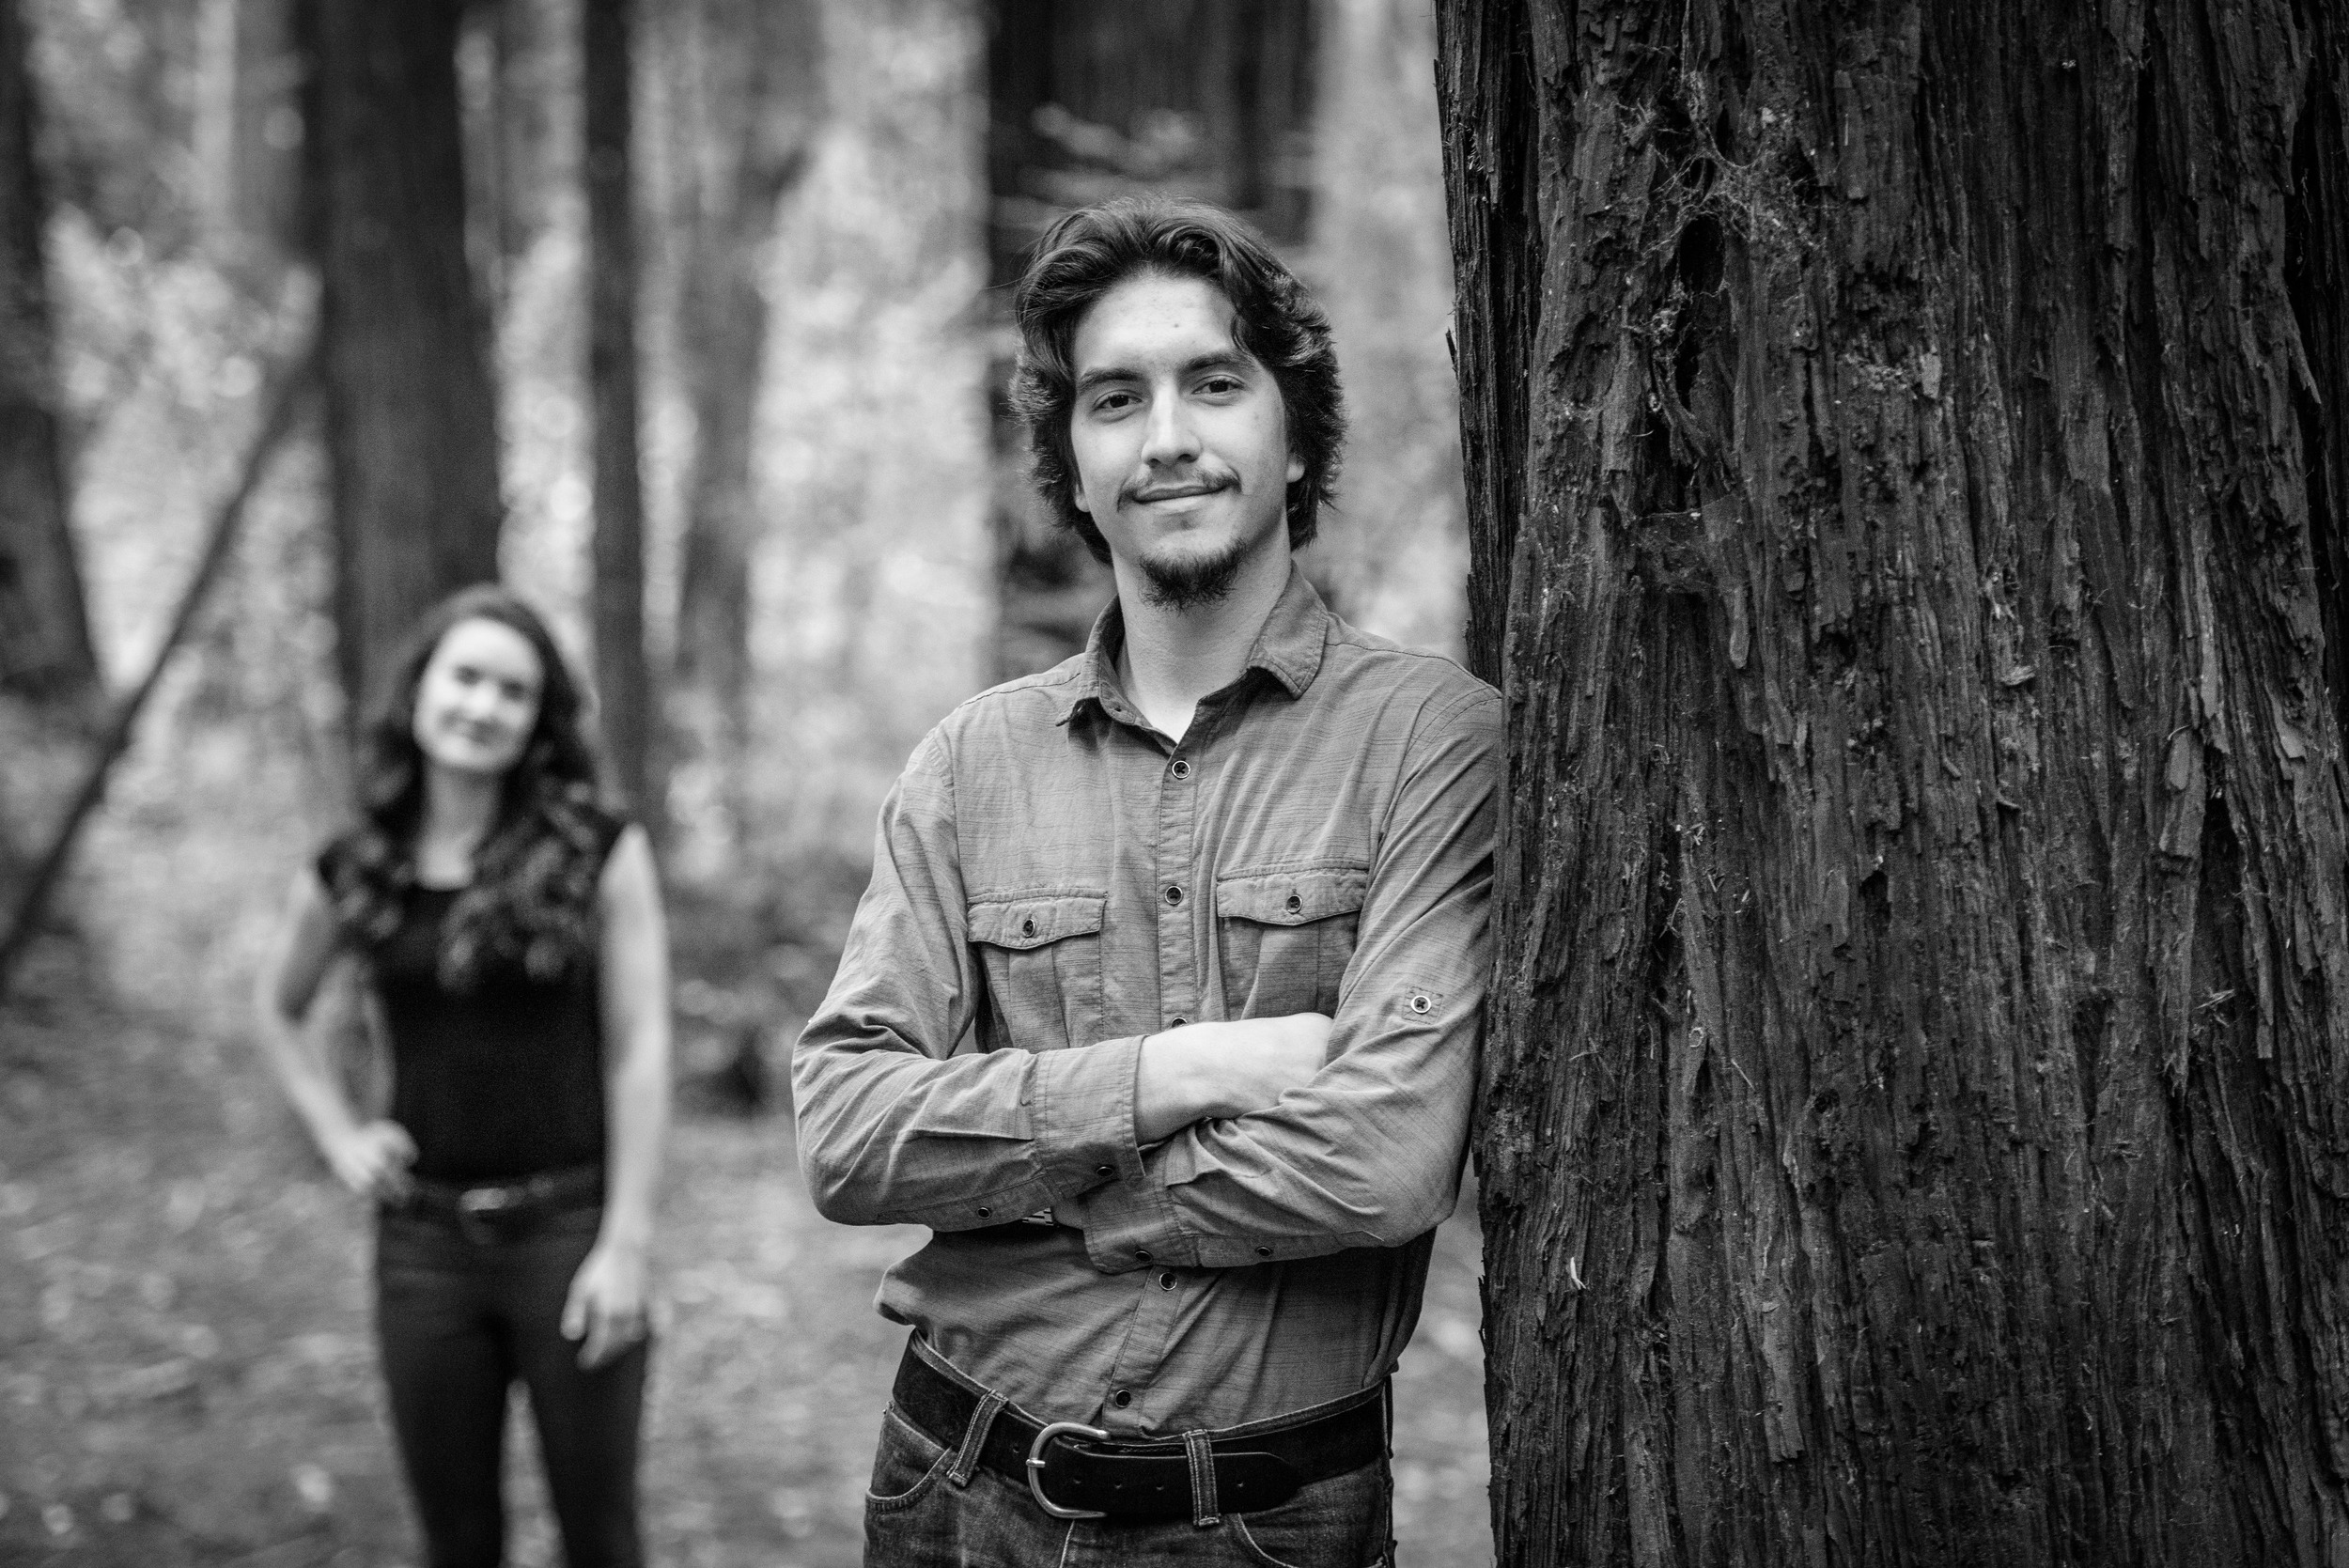 Man leaning against redwood tree looking at camera with fiancee in the background - Engagement Photos in Nisene Marks Forest in Aptos, CA - by Bay Area wedding photographer Chris Schmauch